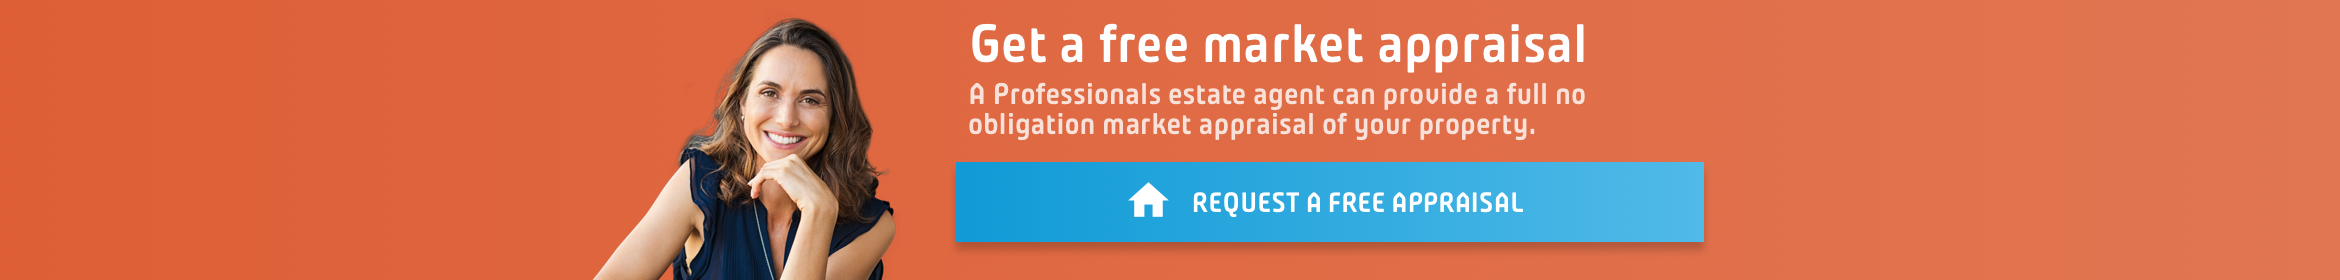 Request a free market appraisal